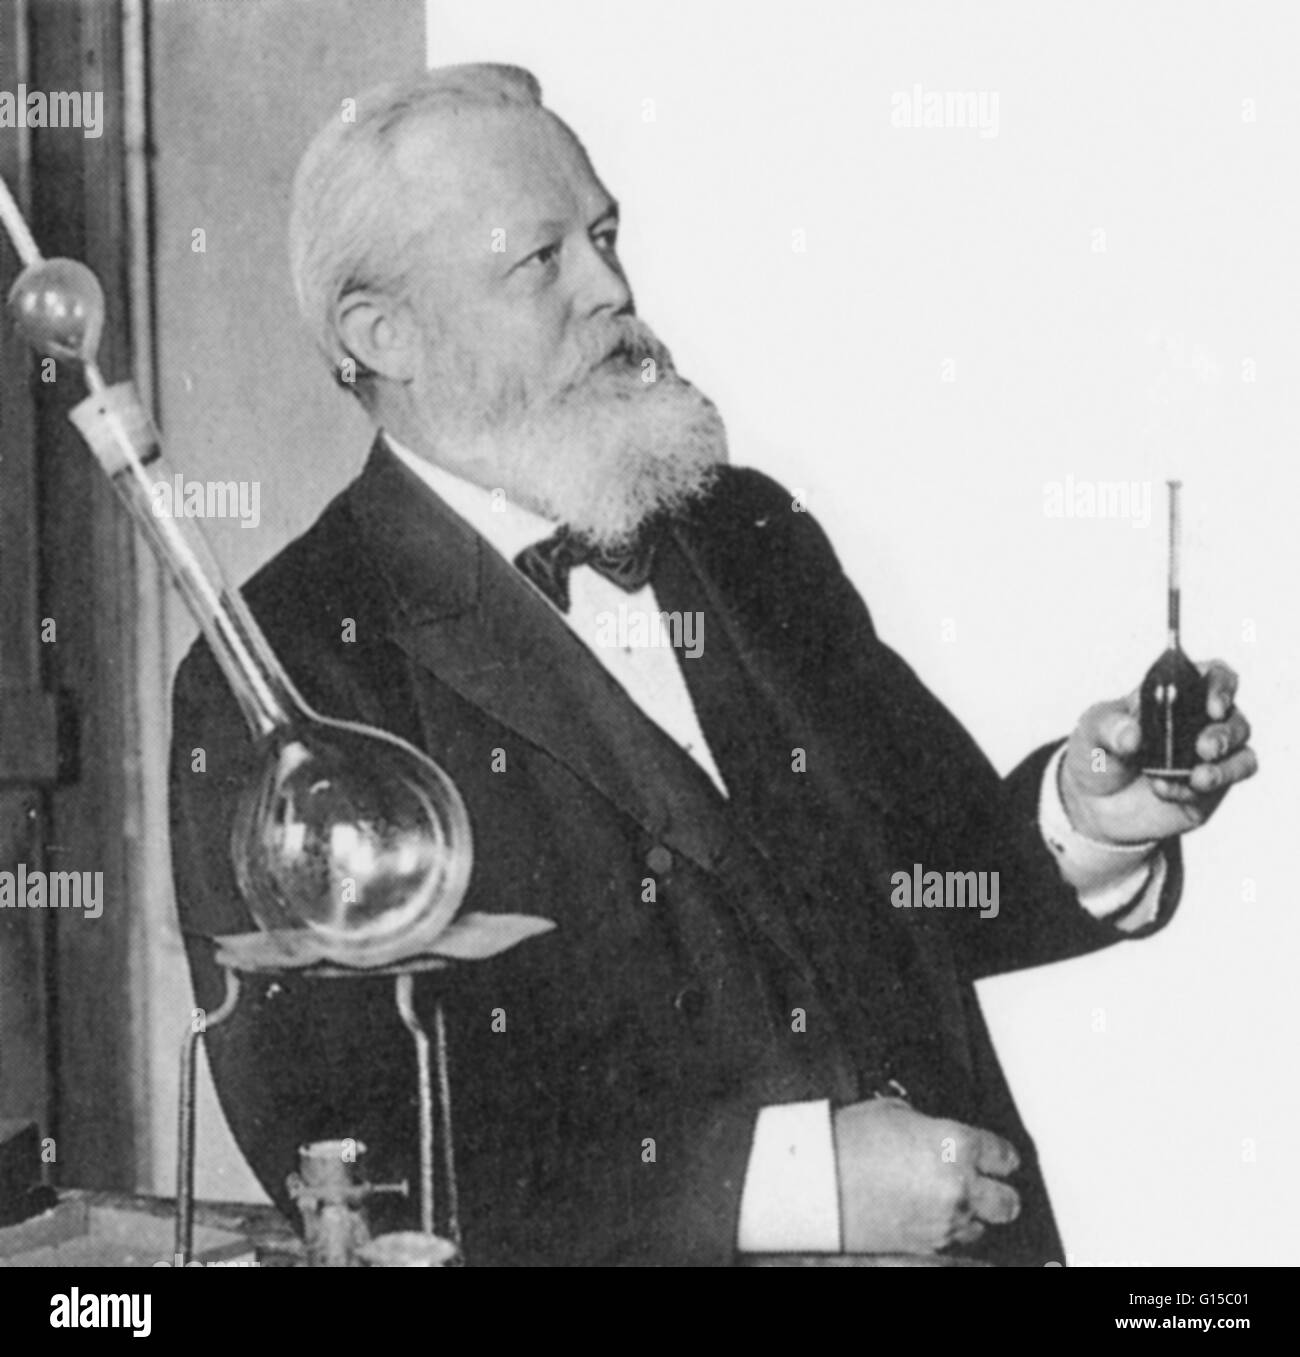 Carl Paul Gottfried von Linde (1842-1934) was a German engineer who developed refrigeration and gas separation technologies. - Stock Image